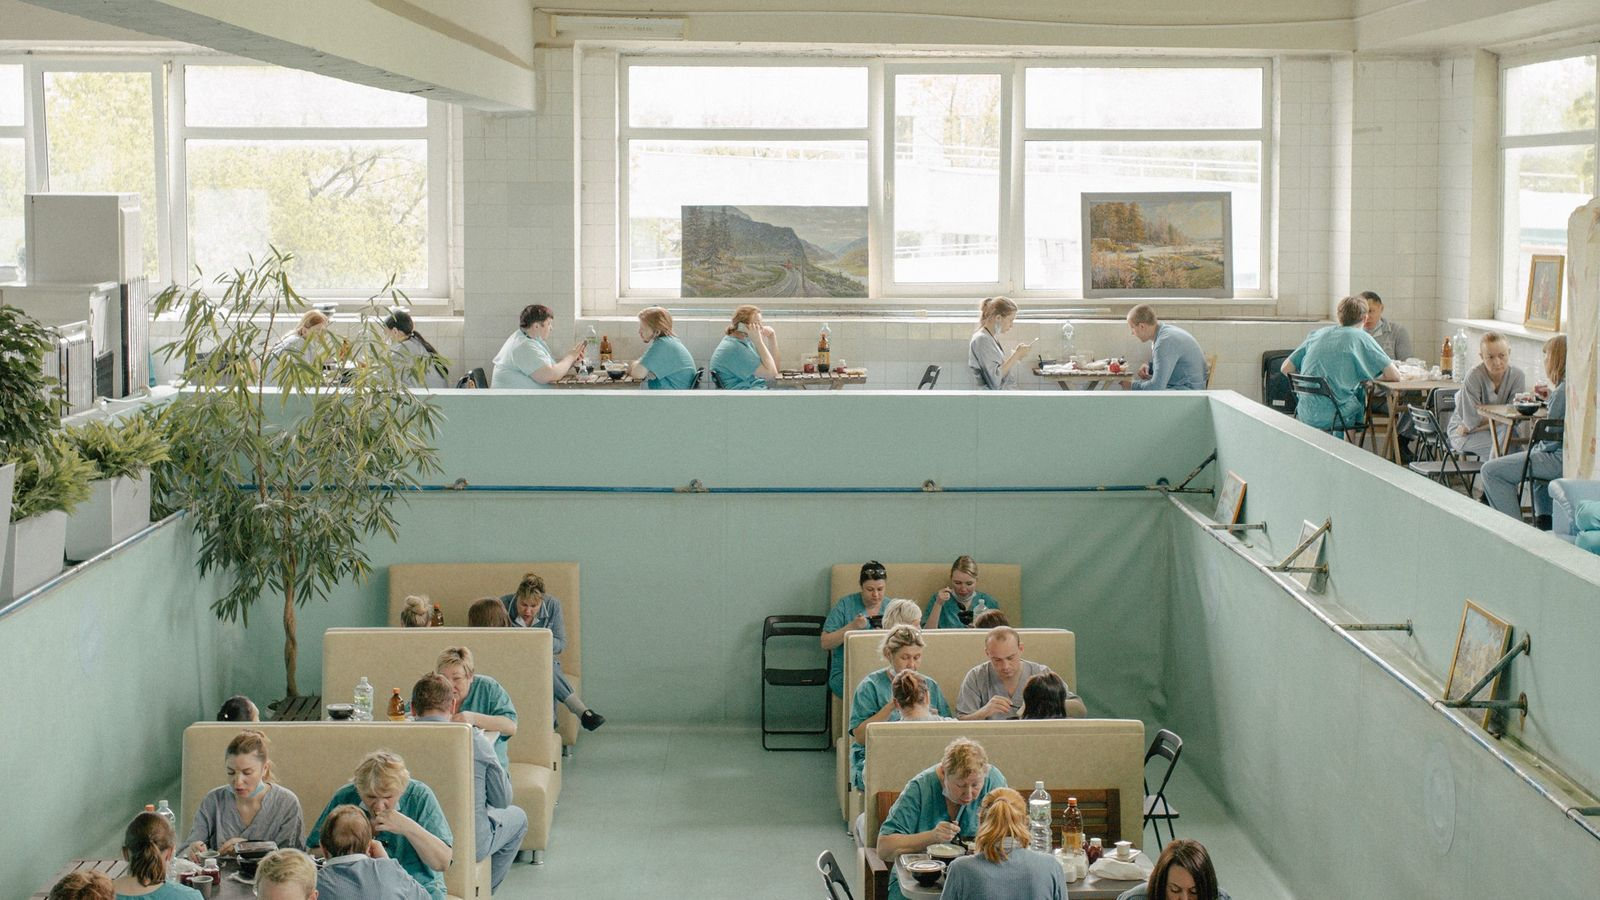 An indoor swimming pool was emptied and repurposed as an employees' dining area at Moscow's Hospital ...